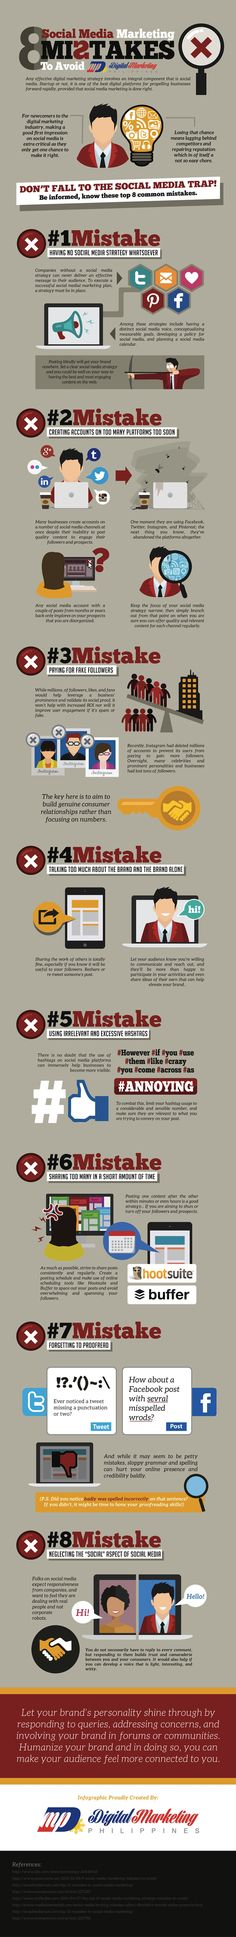 8 Social Media Mistakes to Avoid [INFOGRAPHIC] | Social Media Today